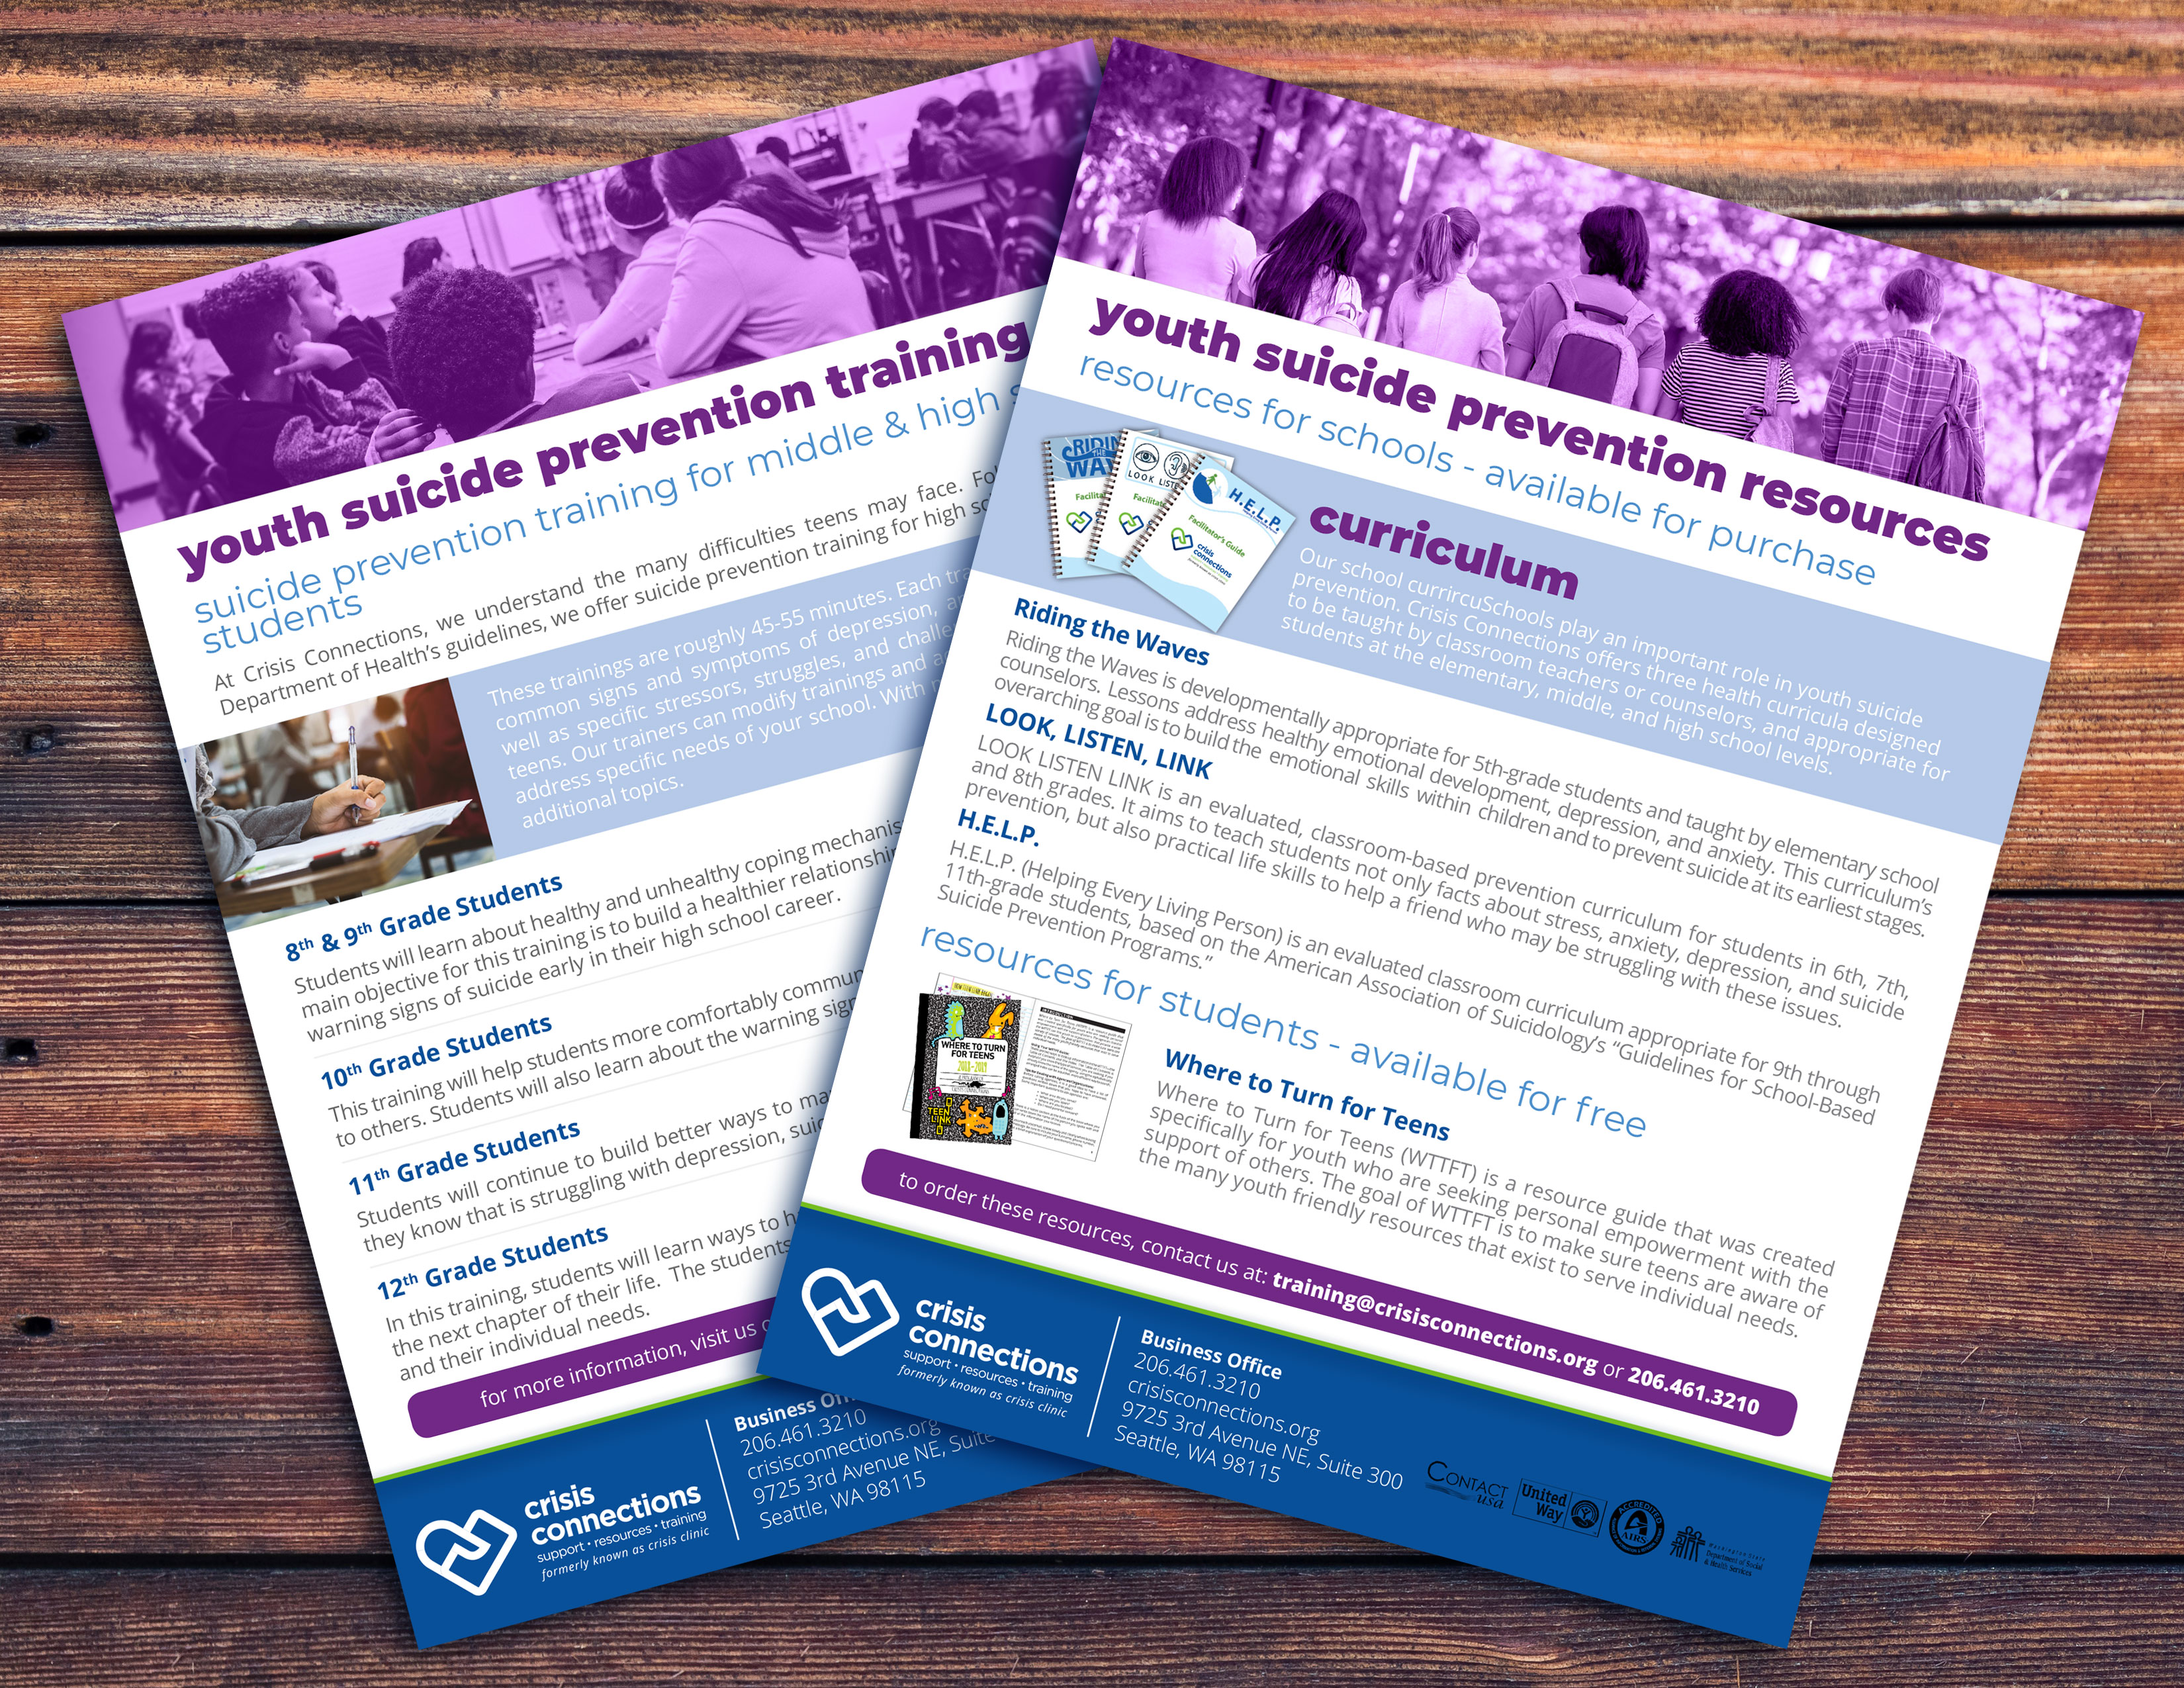 Crisis-Connections-Youth-Suicide-Prevention-Flyer